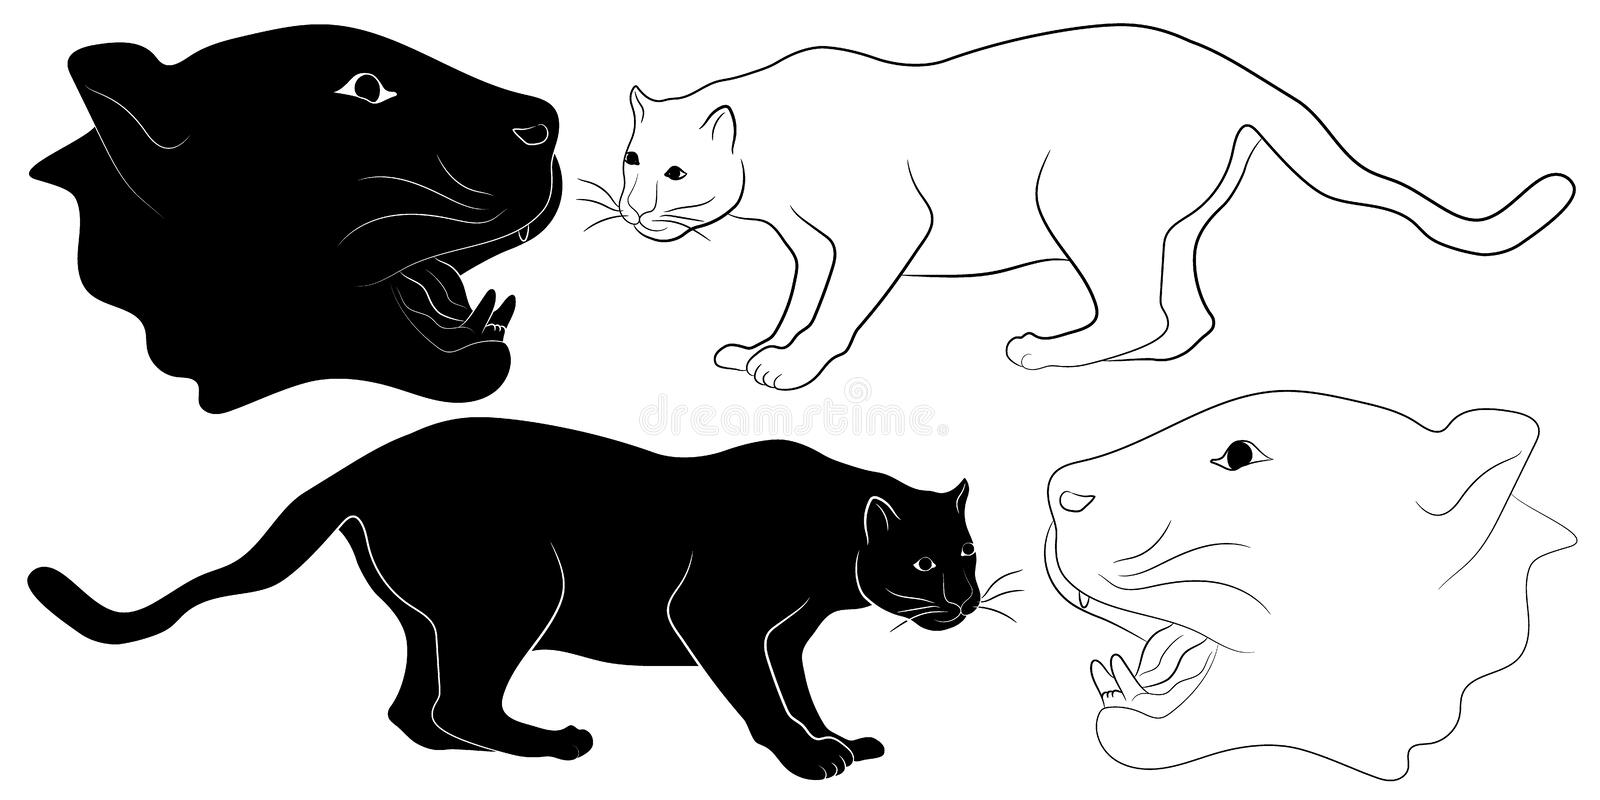 Panther silhouette and outline royalty free illustration